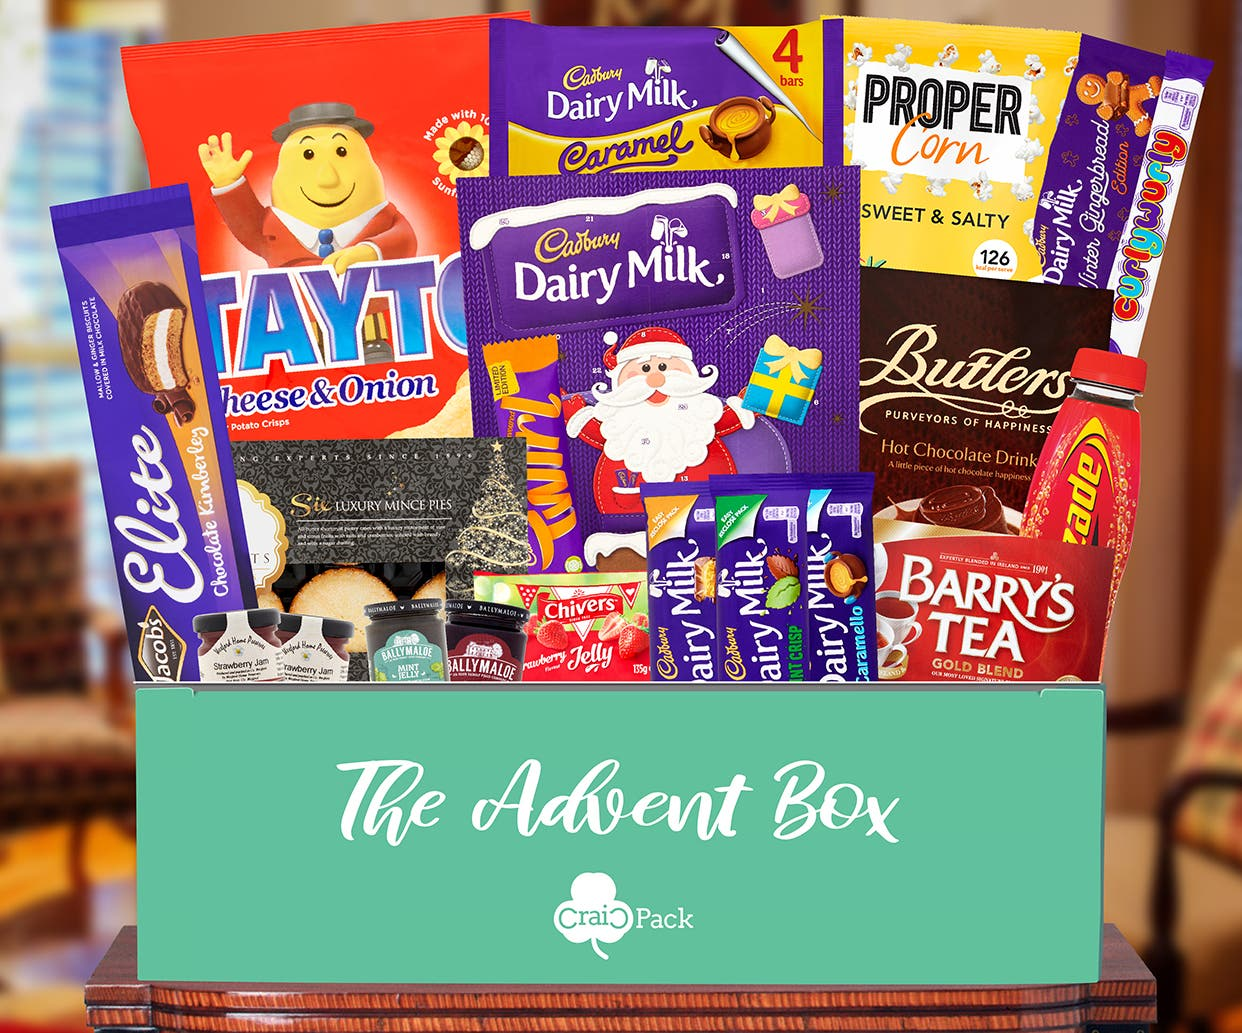 Craicpack Advent Box